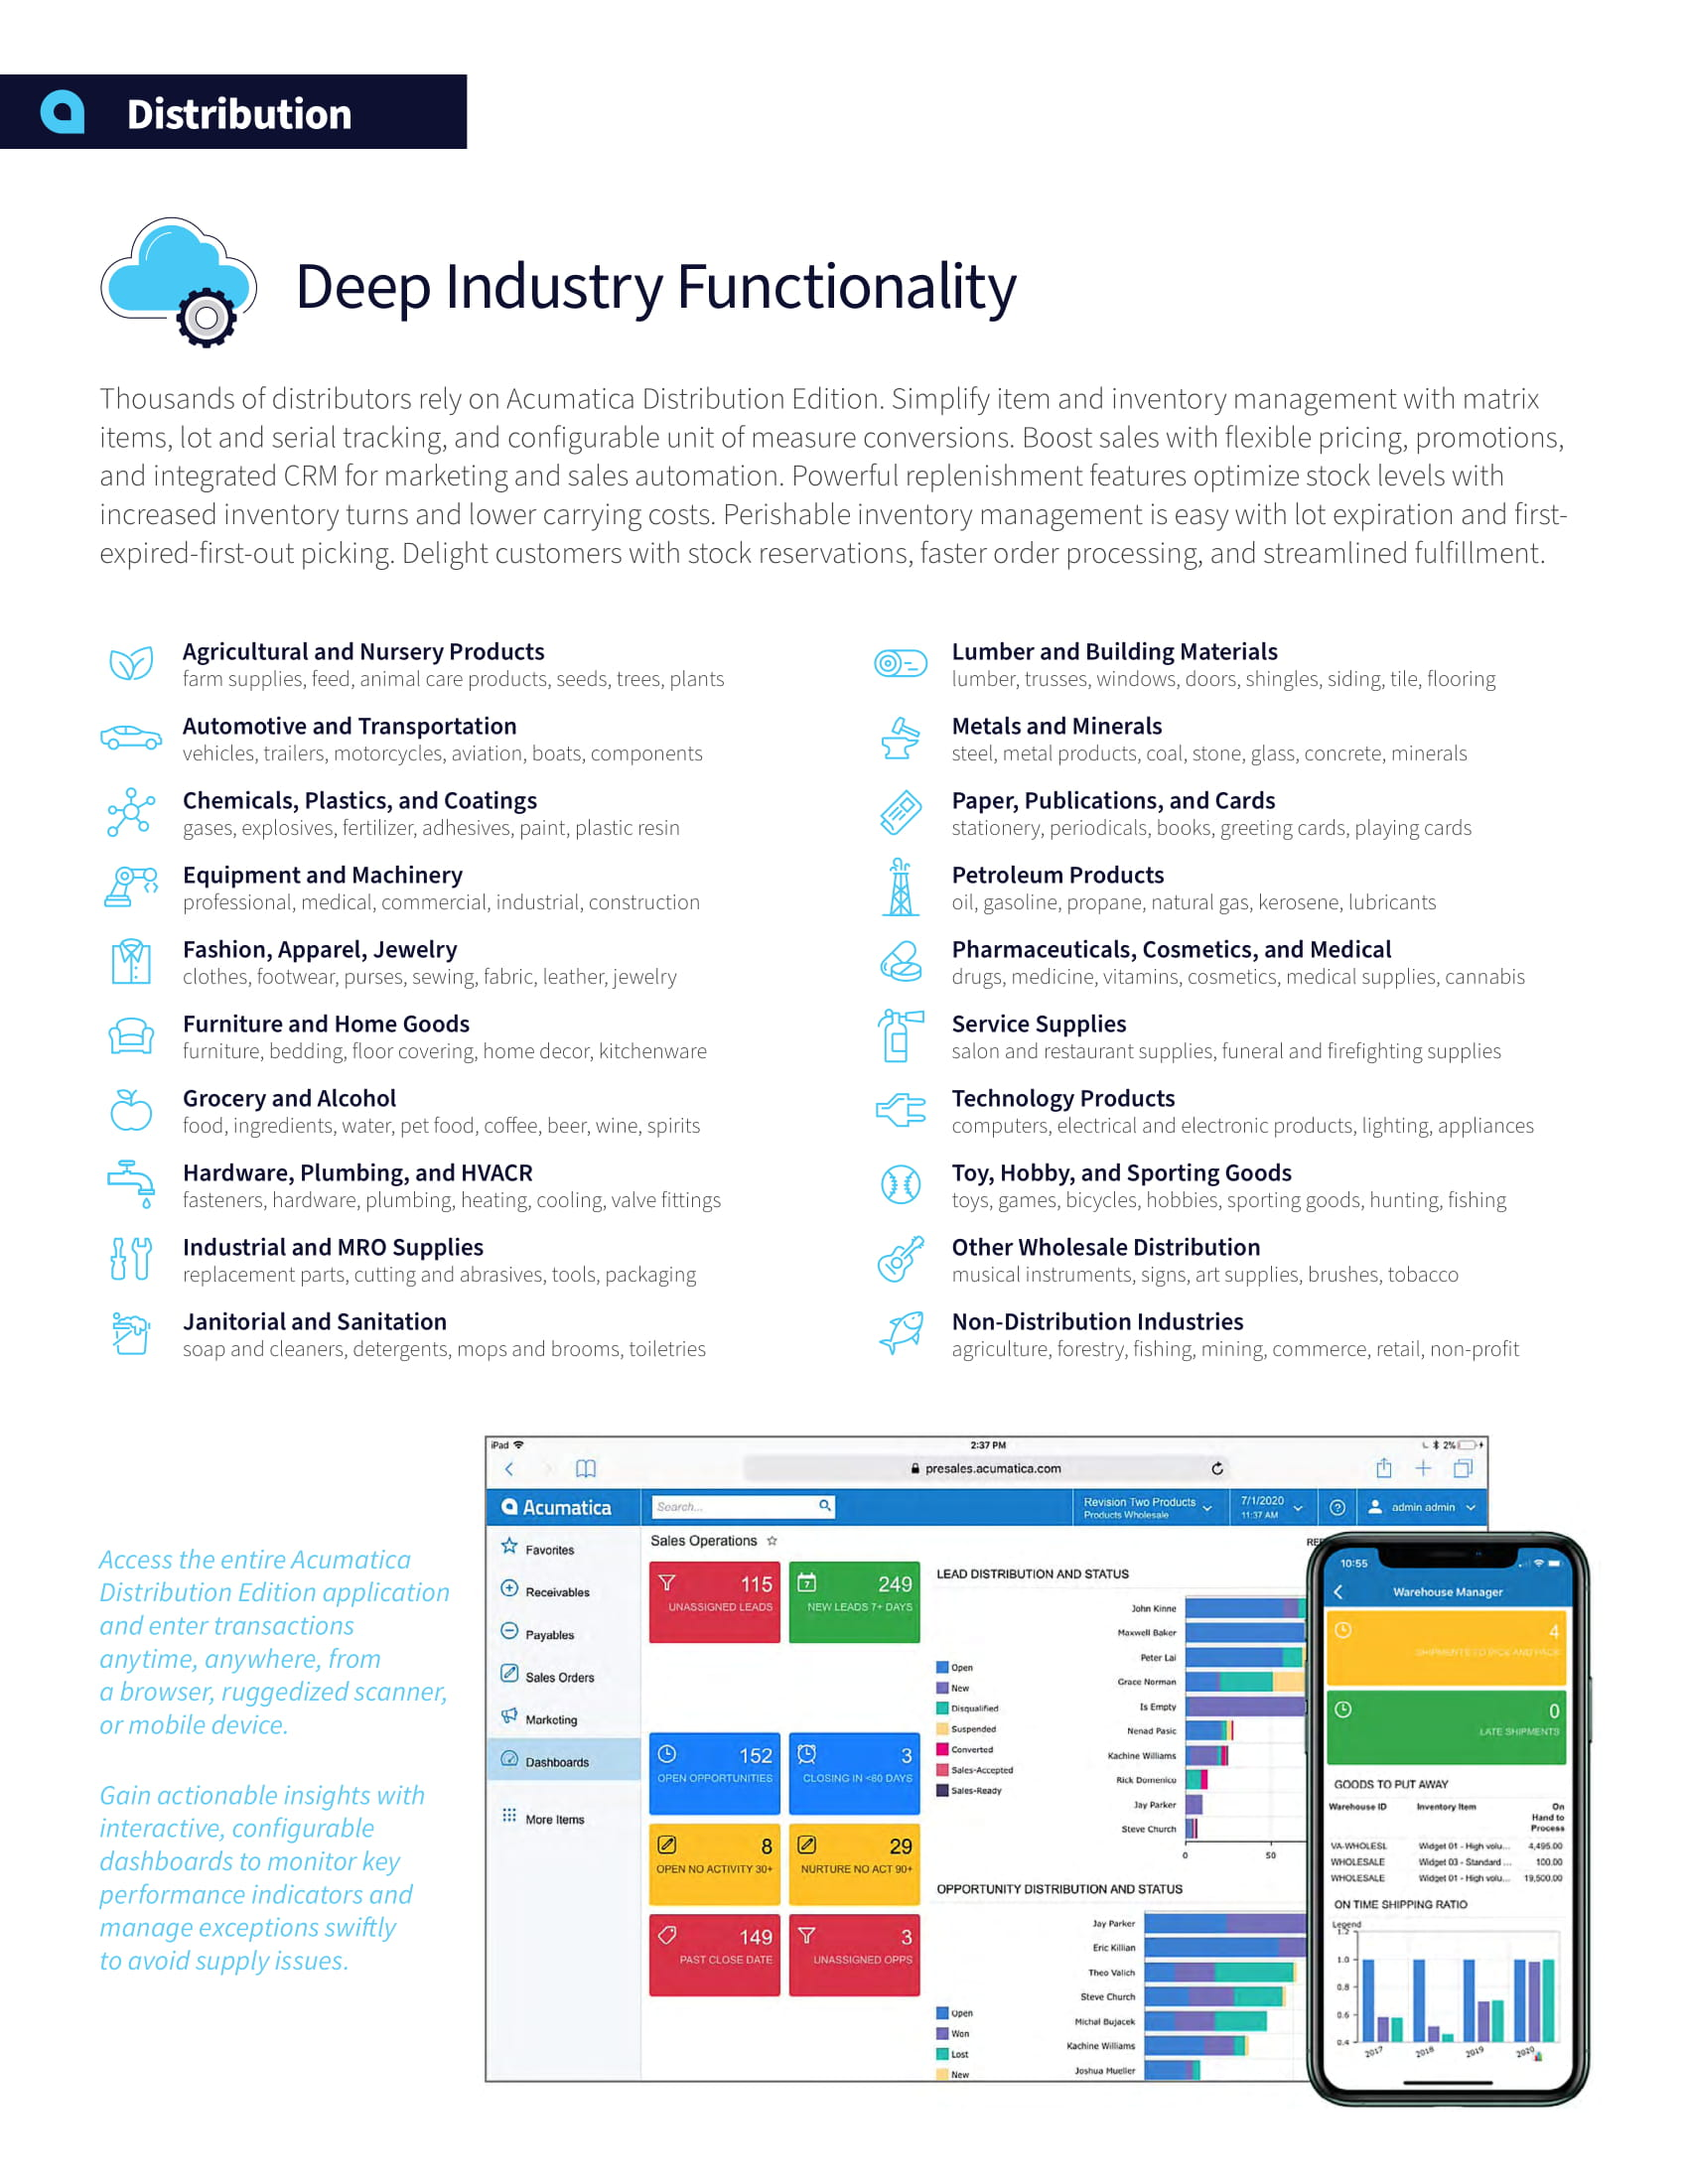 Distribution ERP: Find the Best Blend of Functionality and Simplicity, page 2